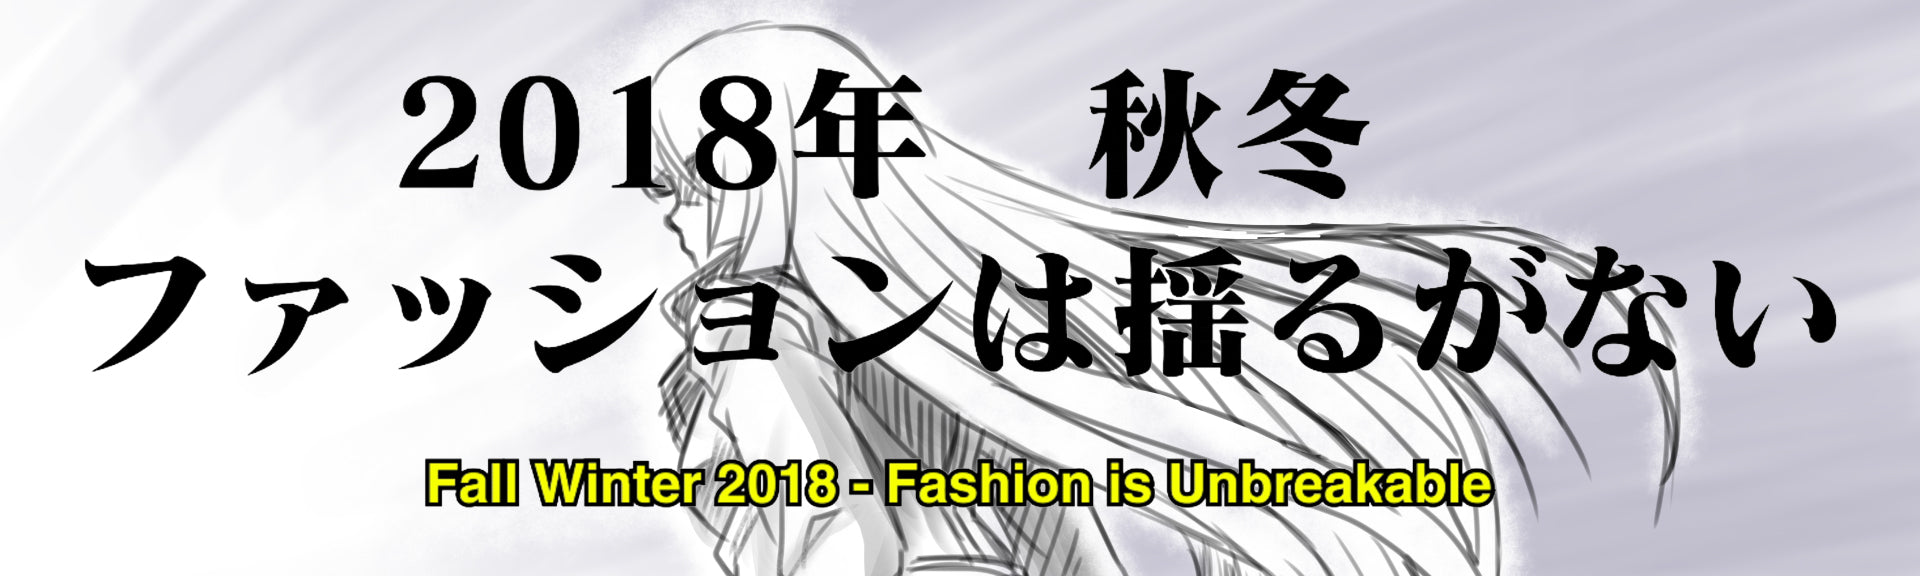 FW18: Fashion is Unbreakable